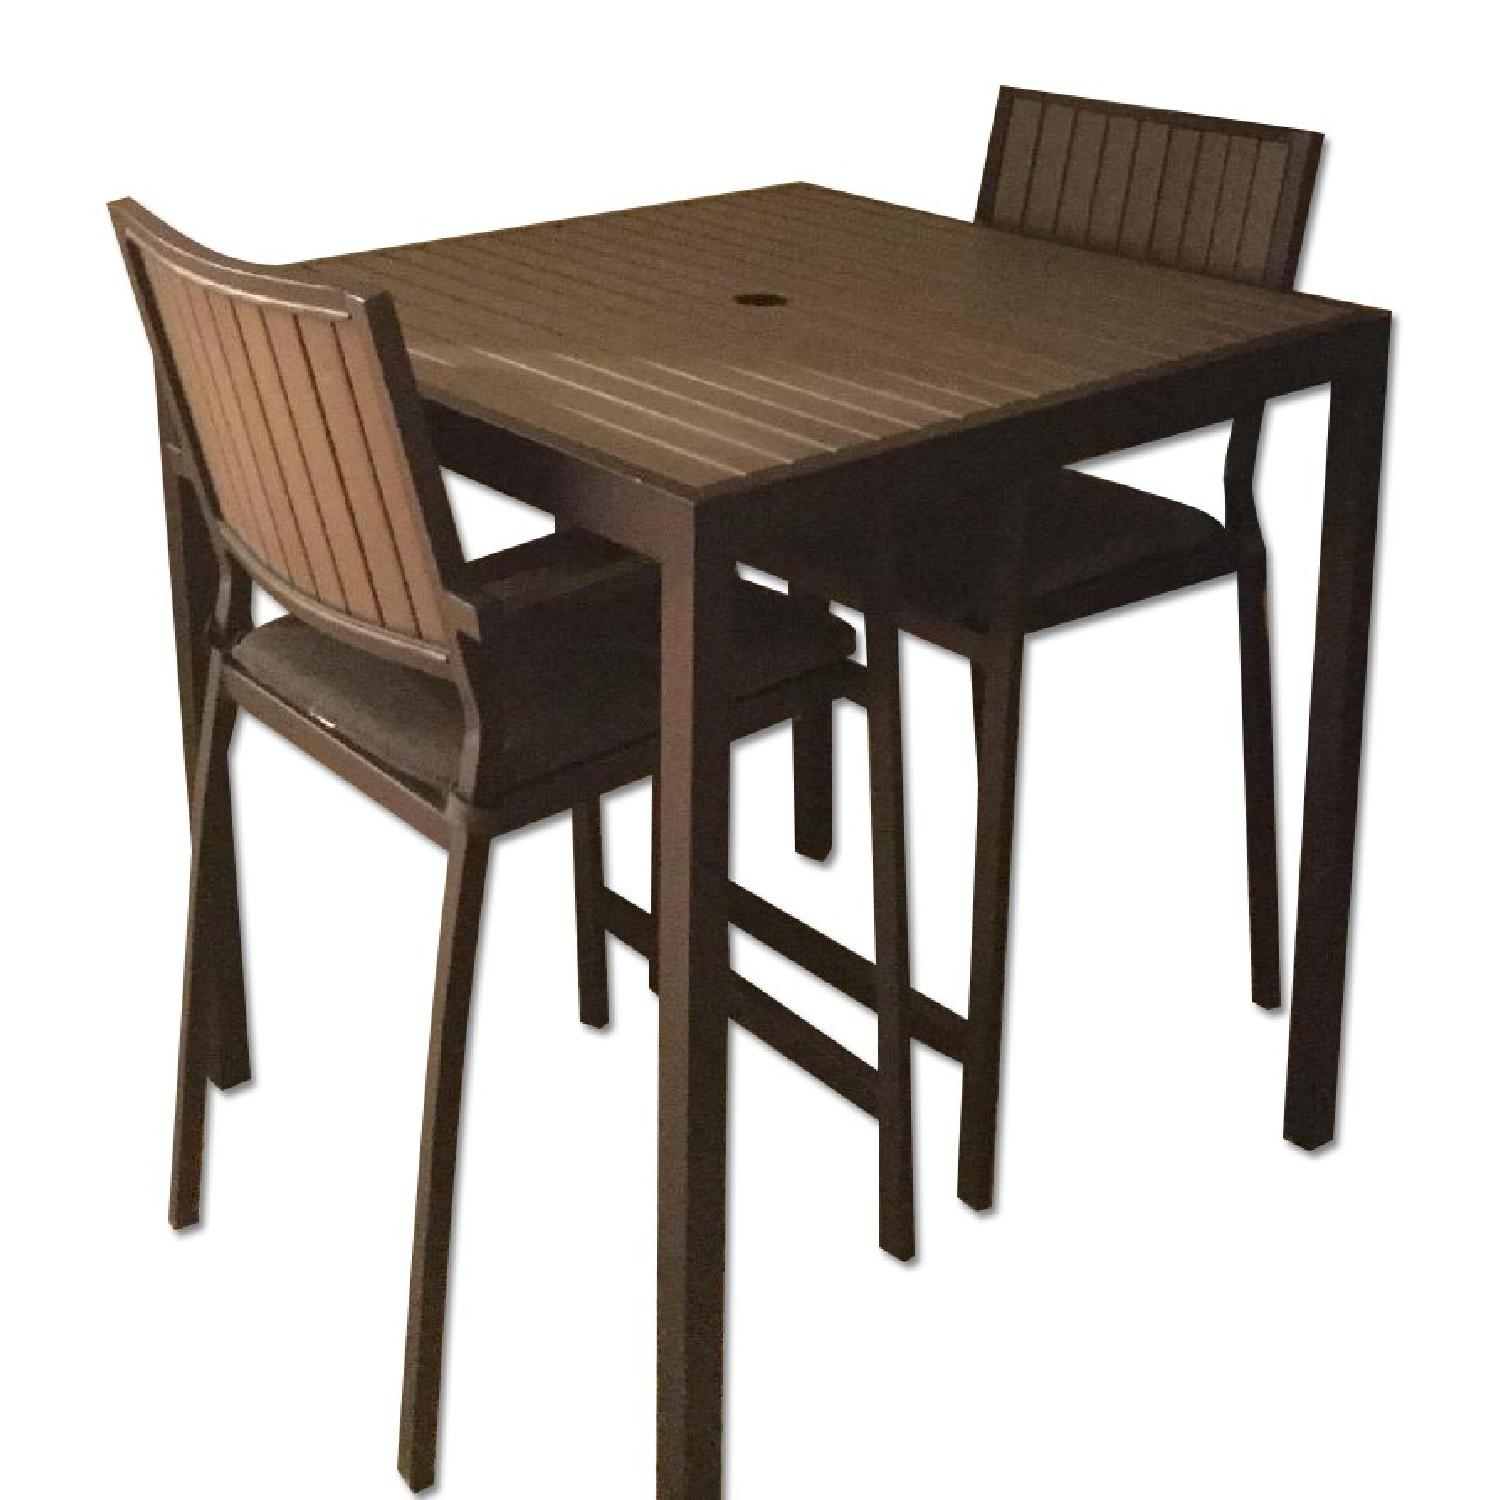 Crate & Barrel Alfresco Home Outdoor Dining Table w/ 2 Chairs - image-0